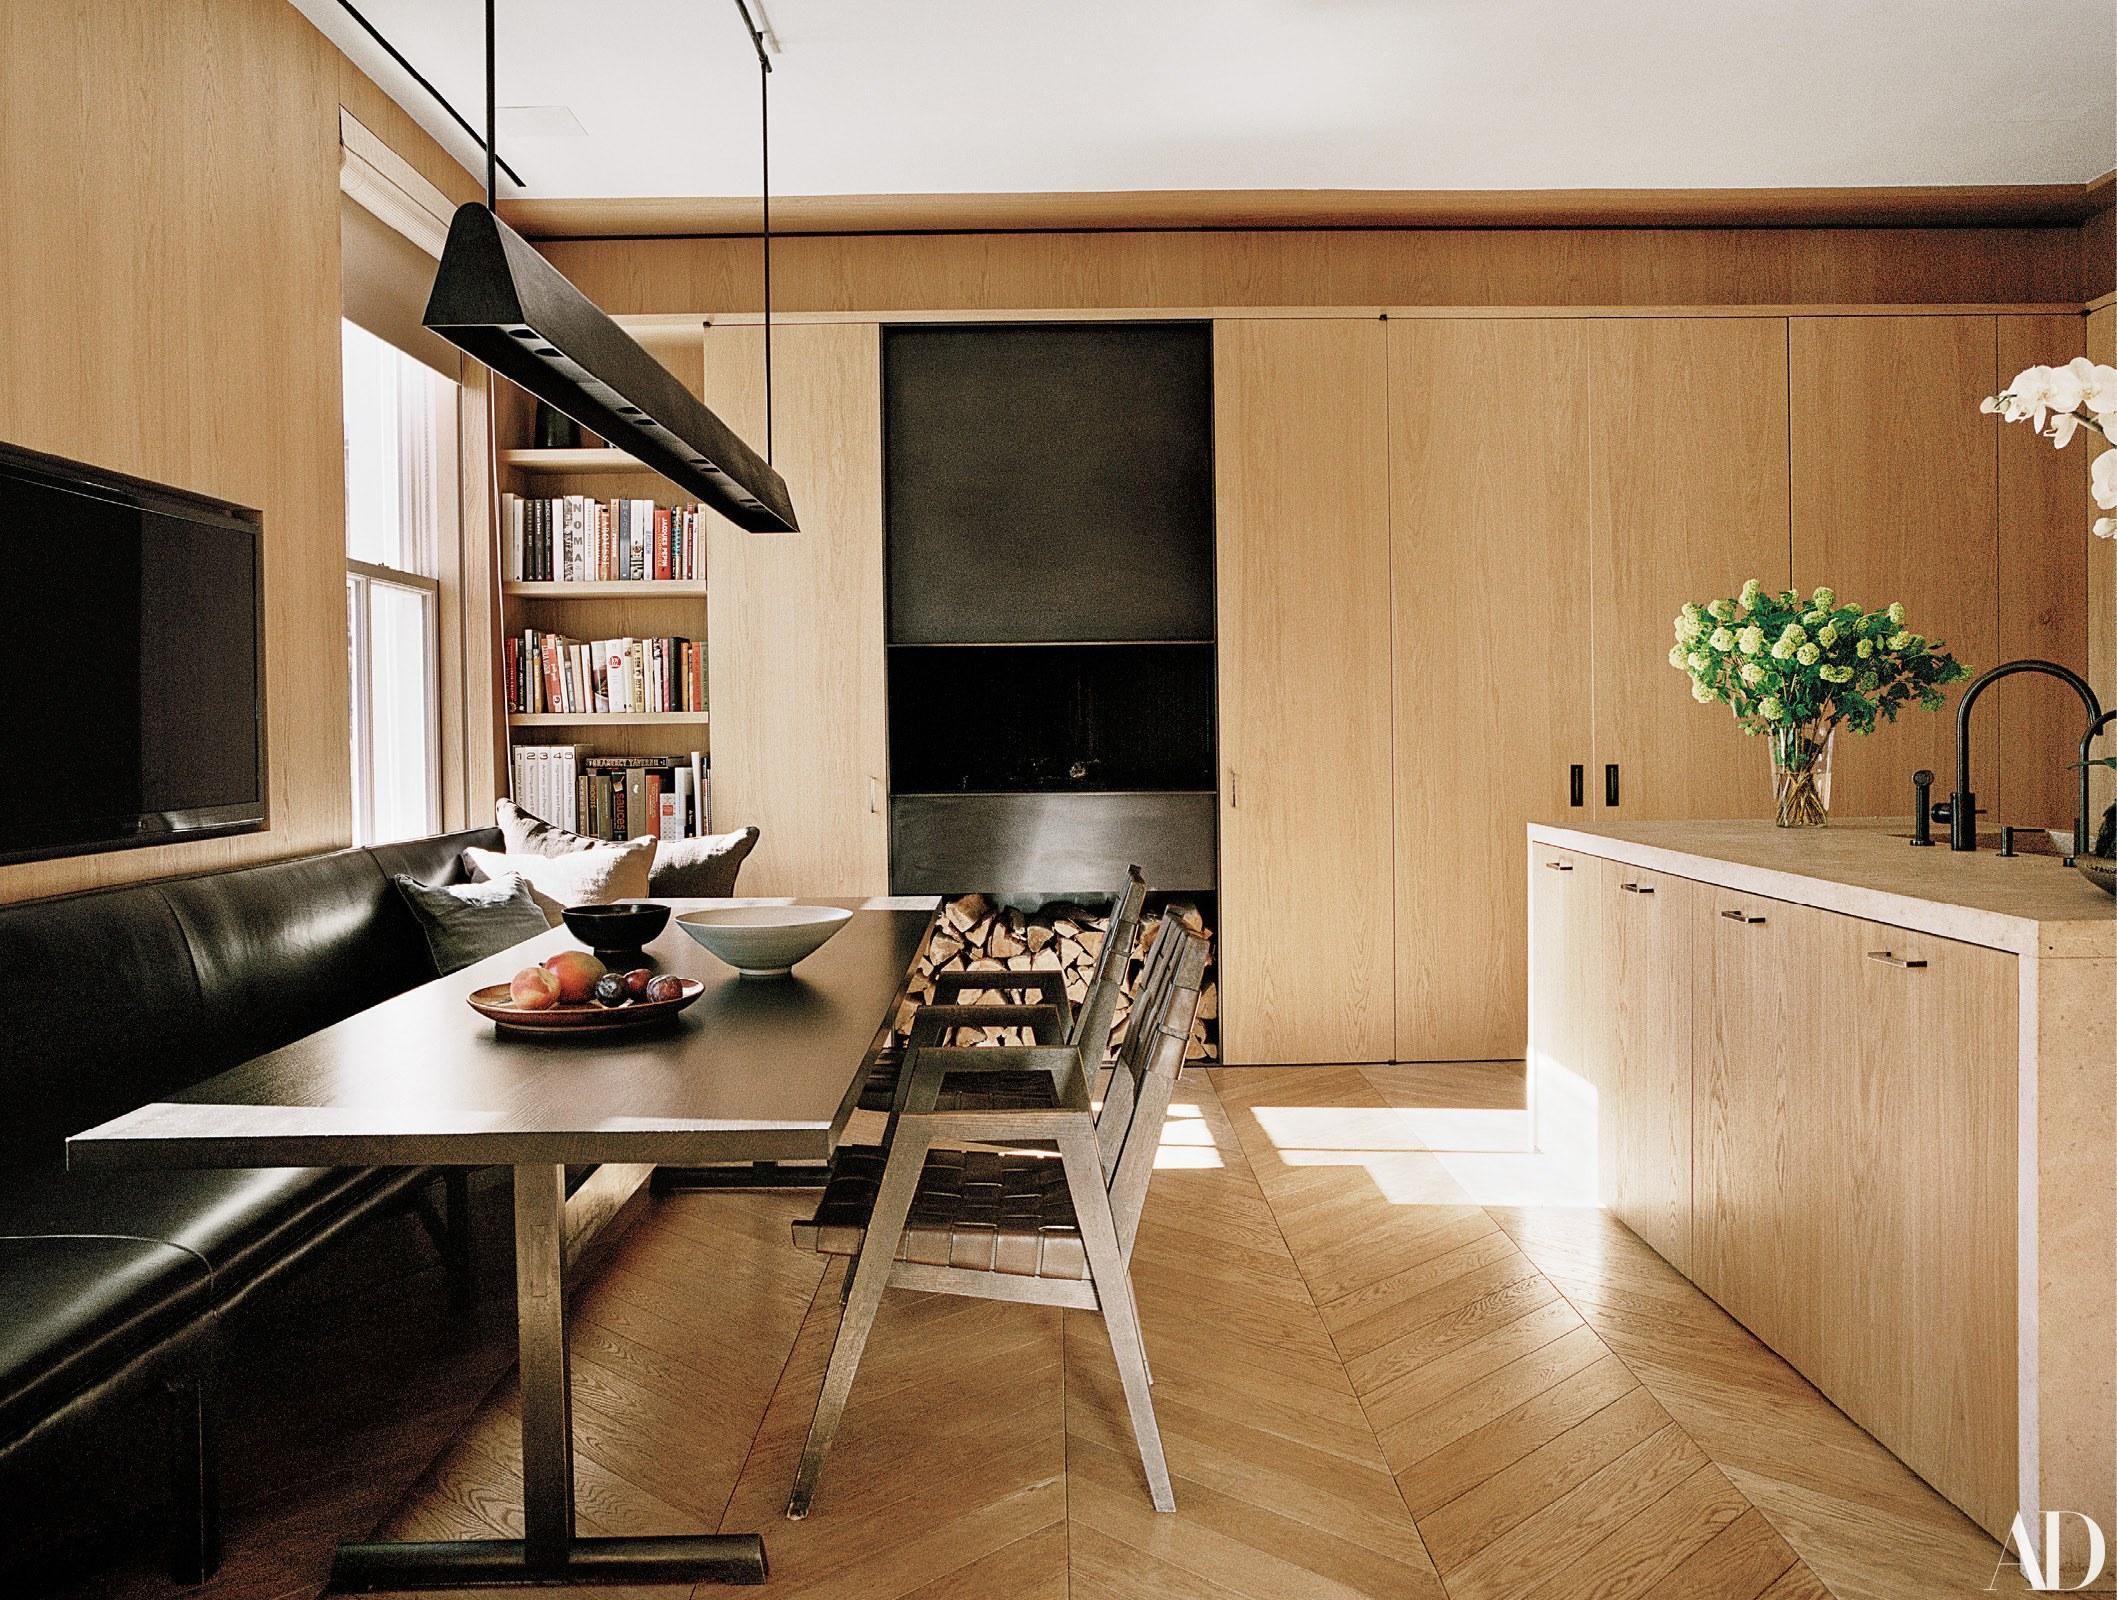 Van Duysen designed the kitchen's pendant light, oak cabinets, table, chairs, and island.